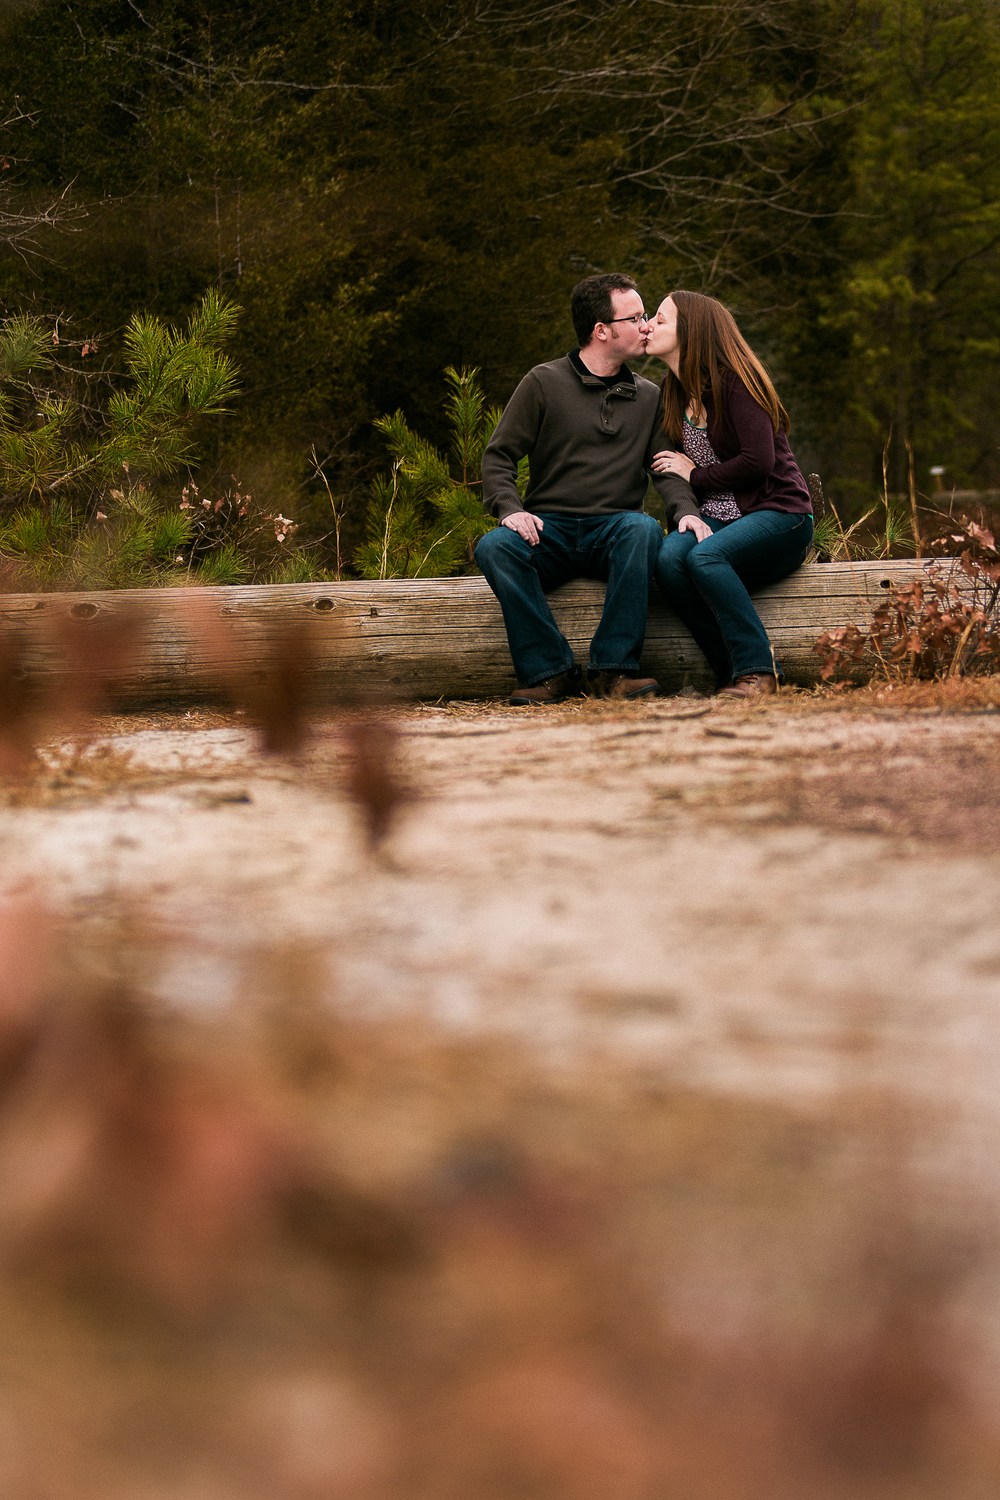 Samantha and Joe Engagement WRH Photography Depford NJ-6.jpg